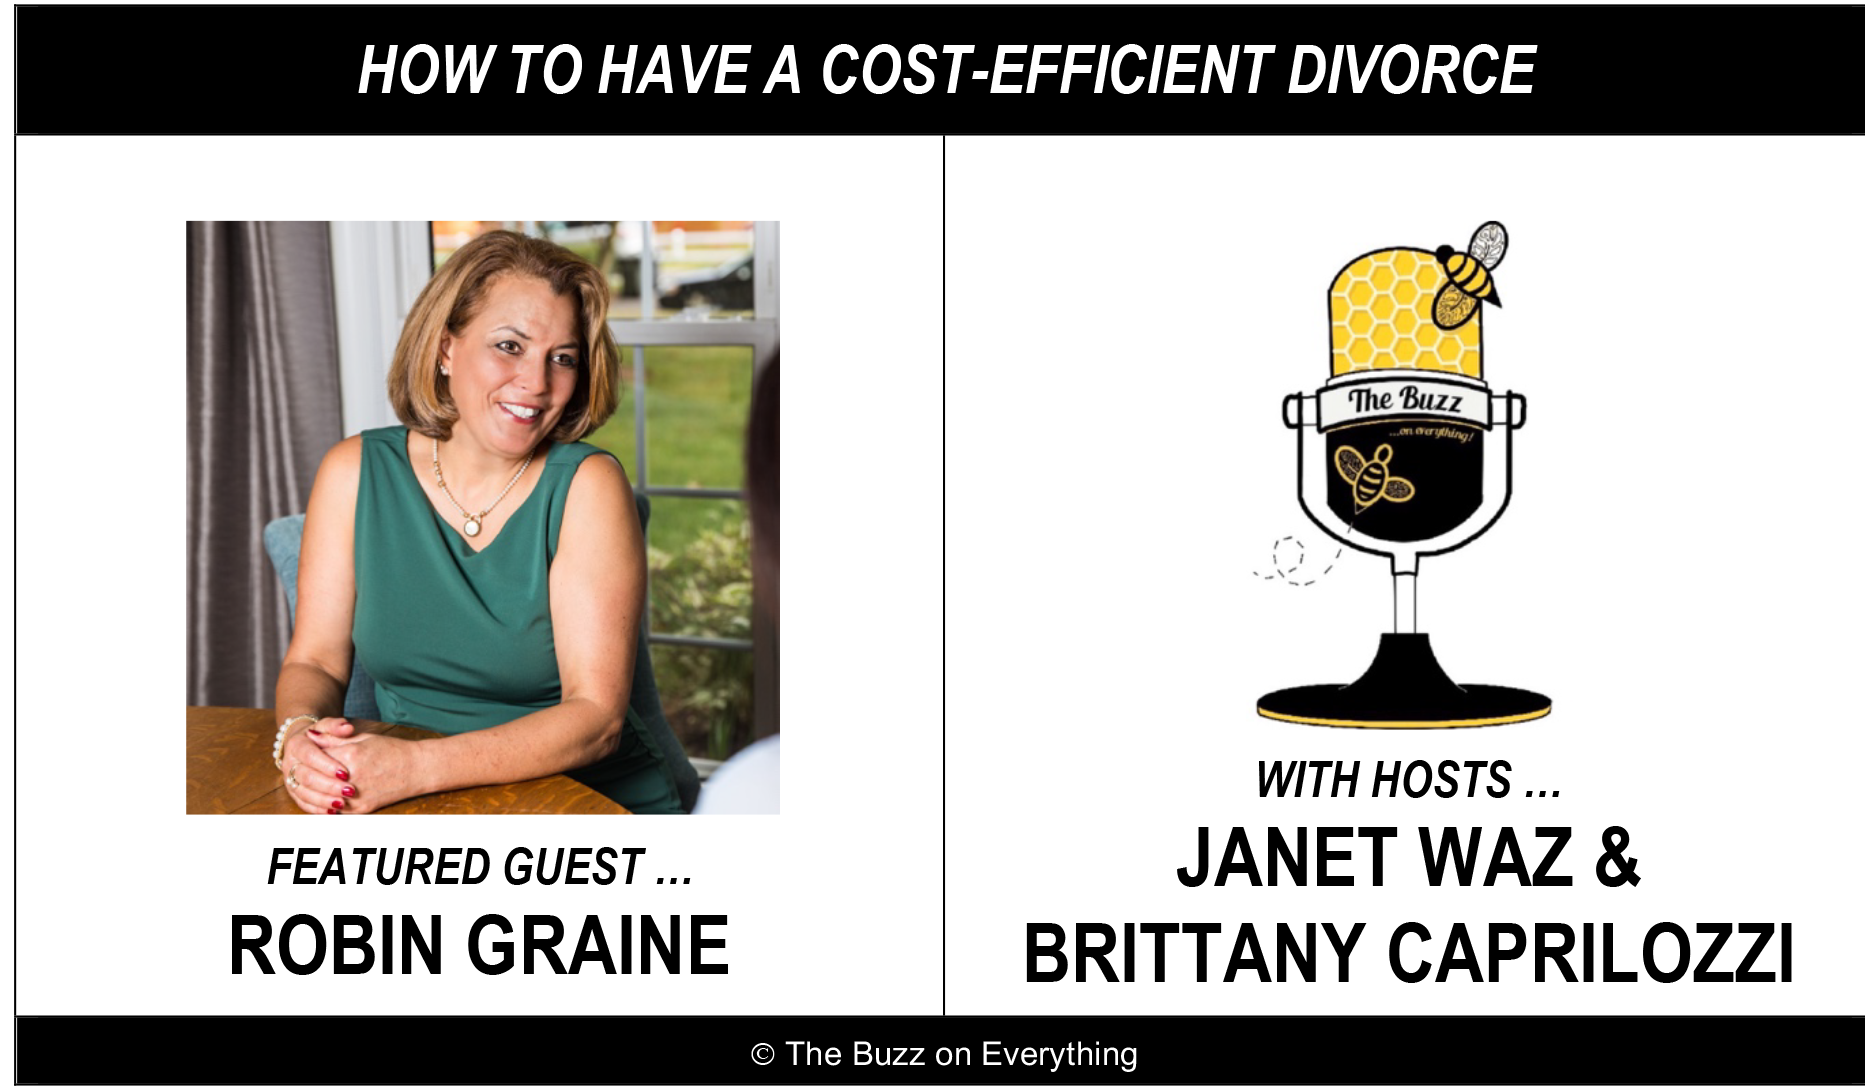 How to have a cost-efficient divorce